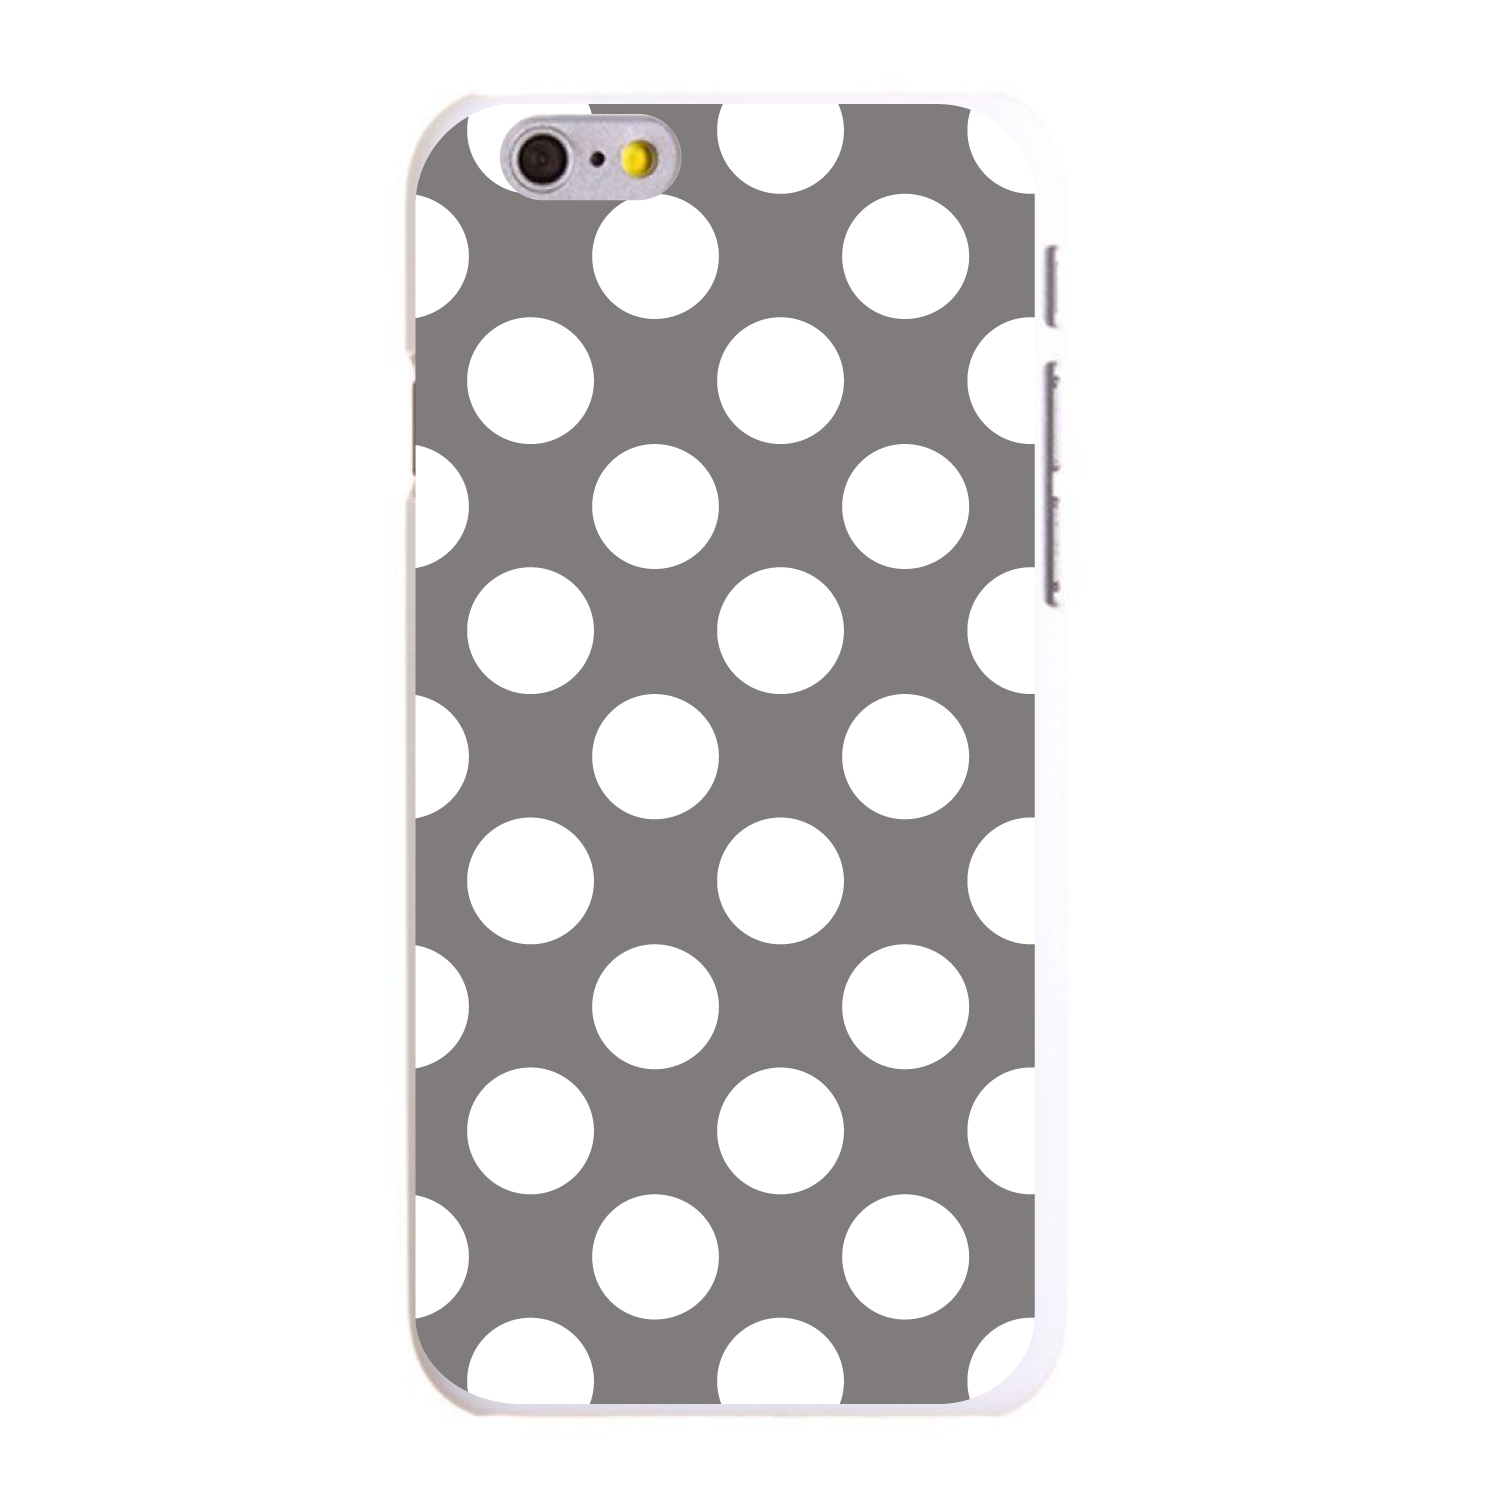 "CUSTOM White Hard Plastic Snap-On Case for Apple iPhone 6 PLUS / 6S PLUS (5.5"" Screen) - White & Grey Polka Dots"